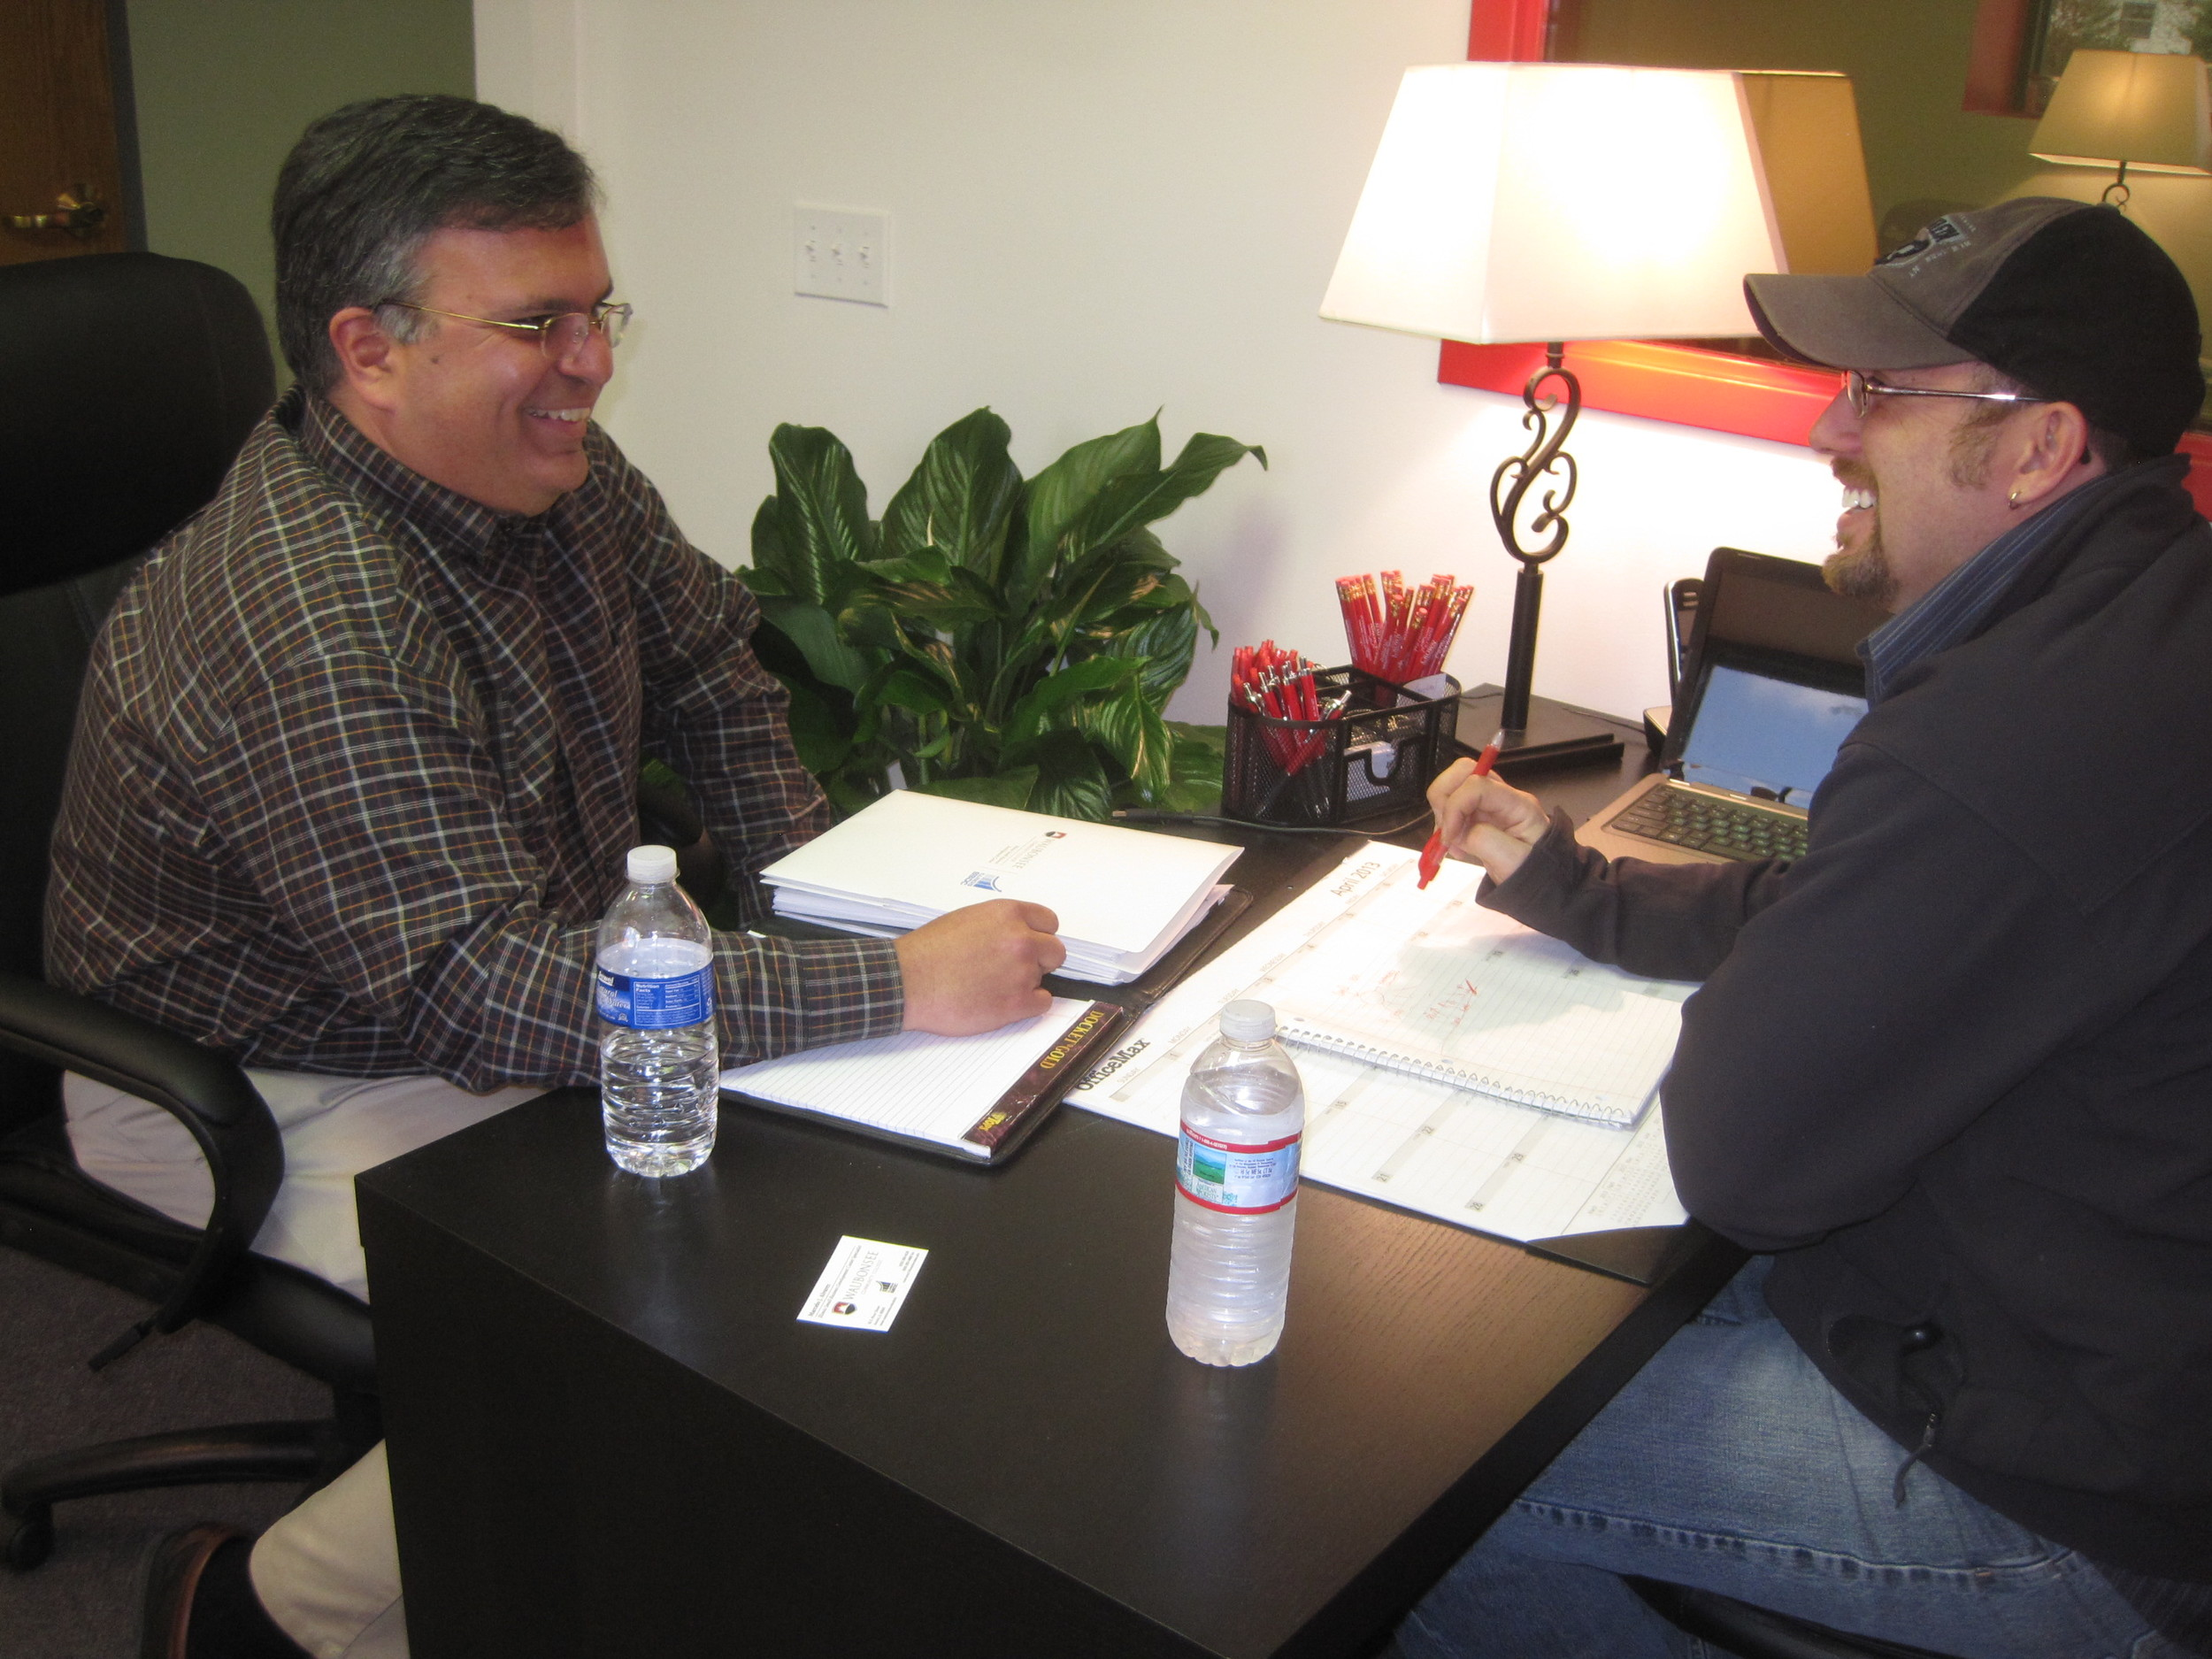 Crown Exteriors President Chad Poegel talking shop with Small Business Administration representative Marcelo Alvarez.